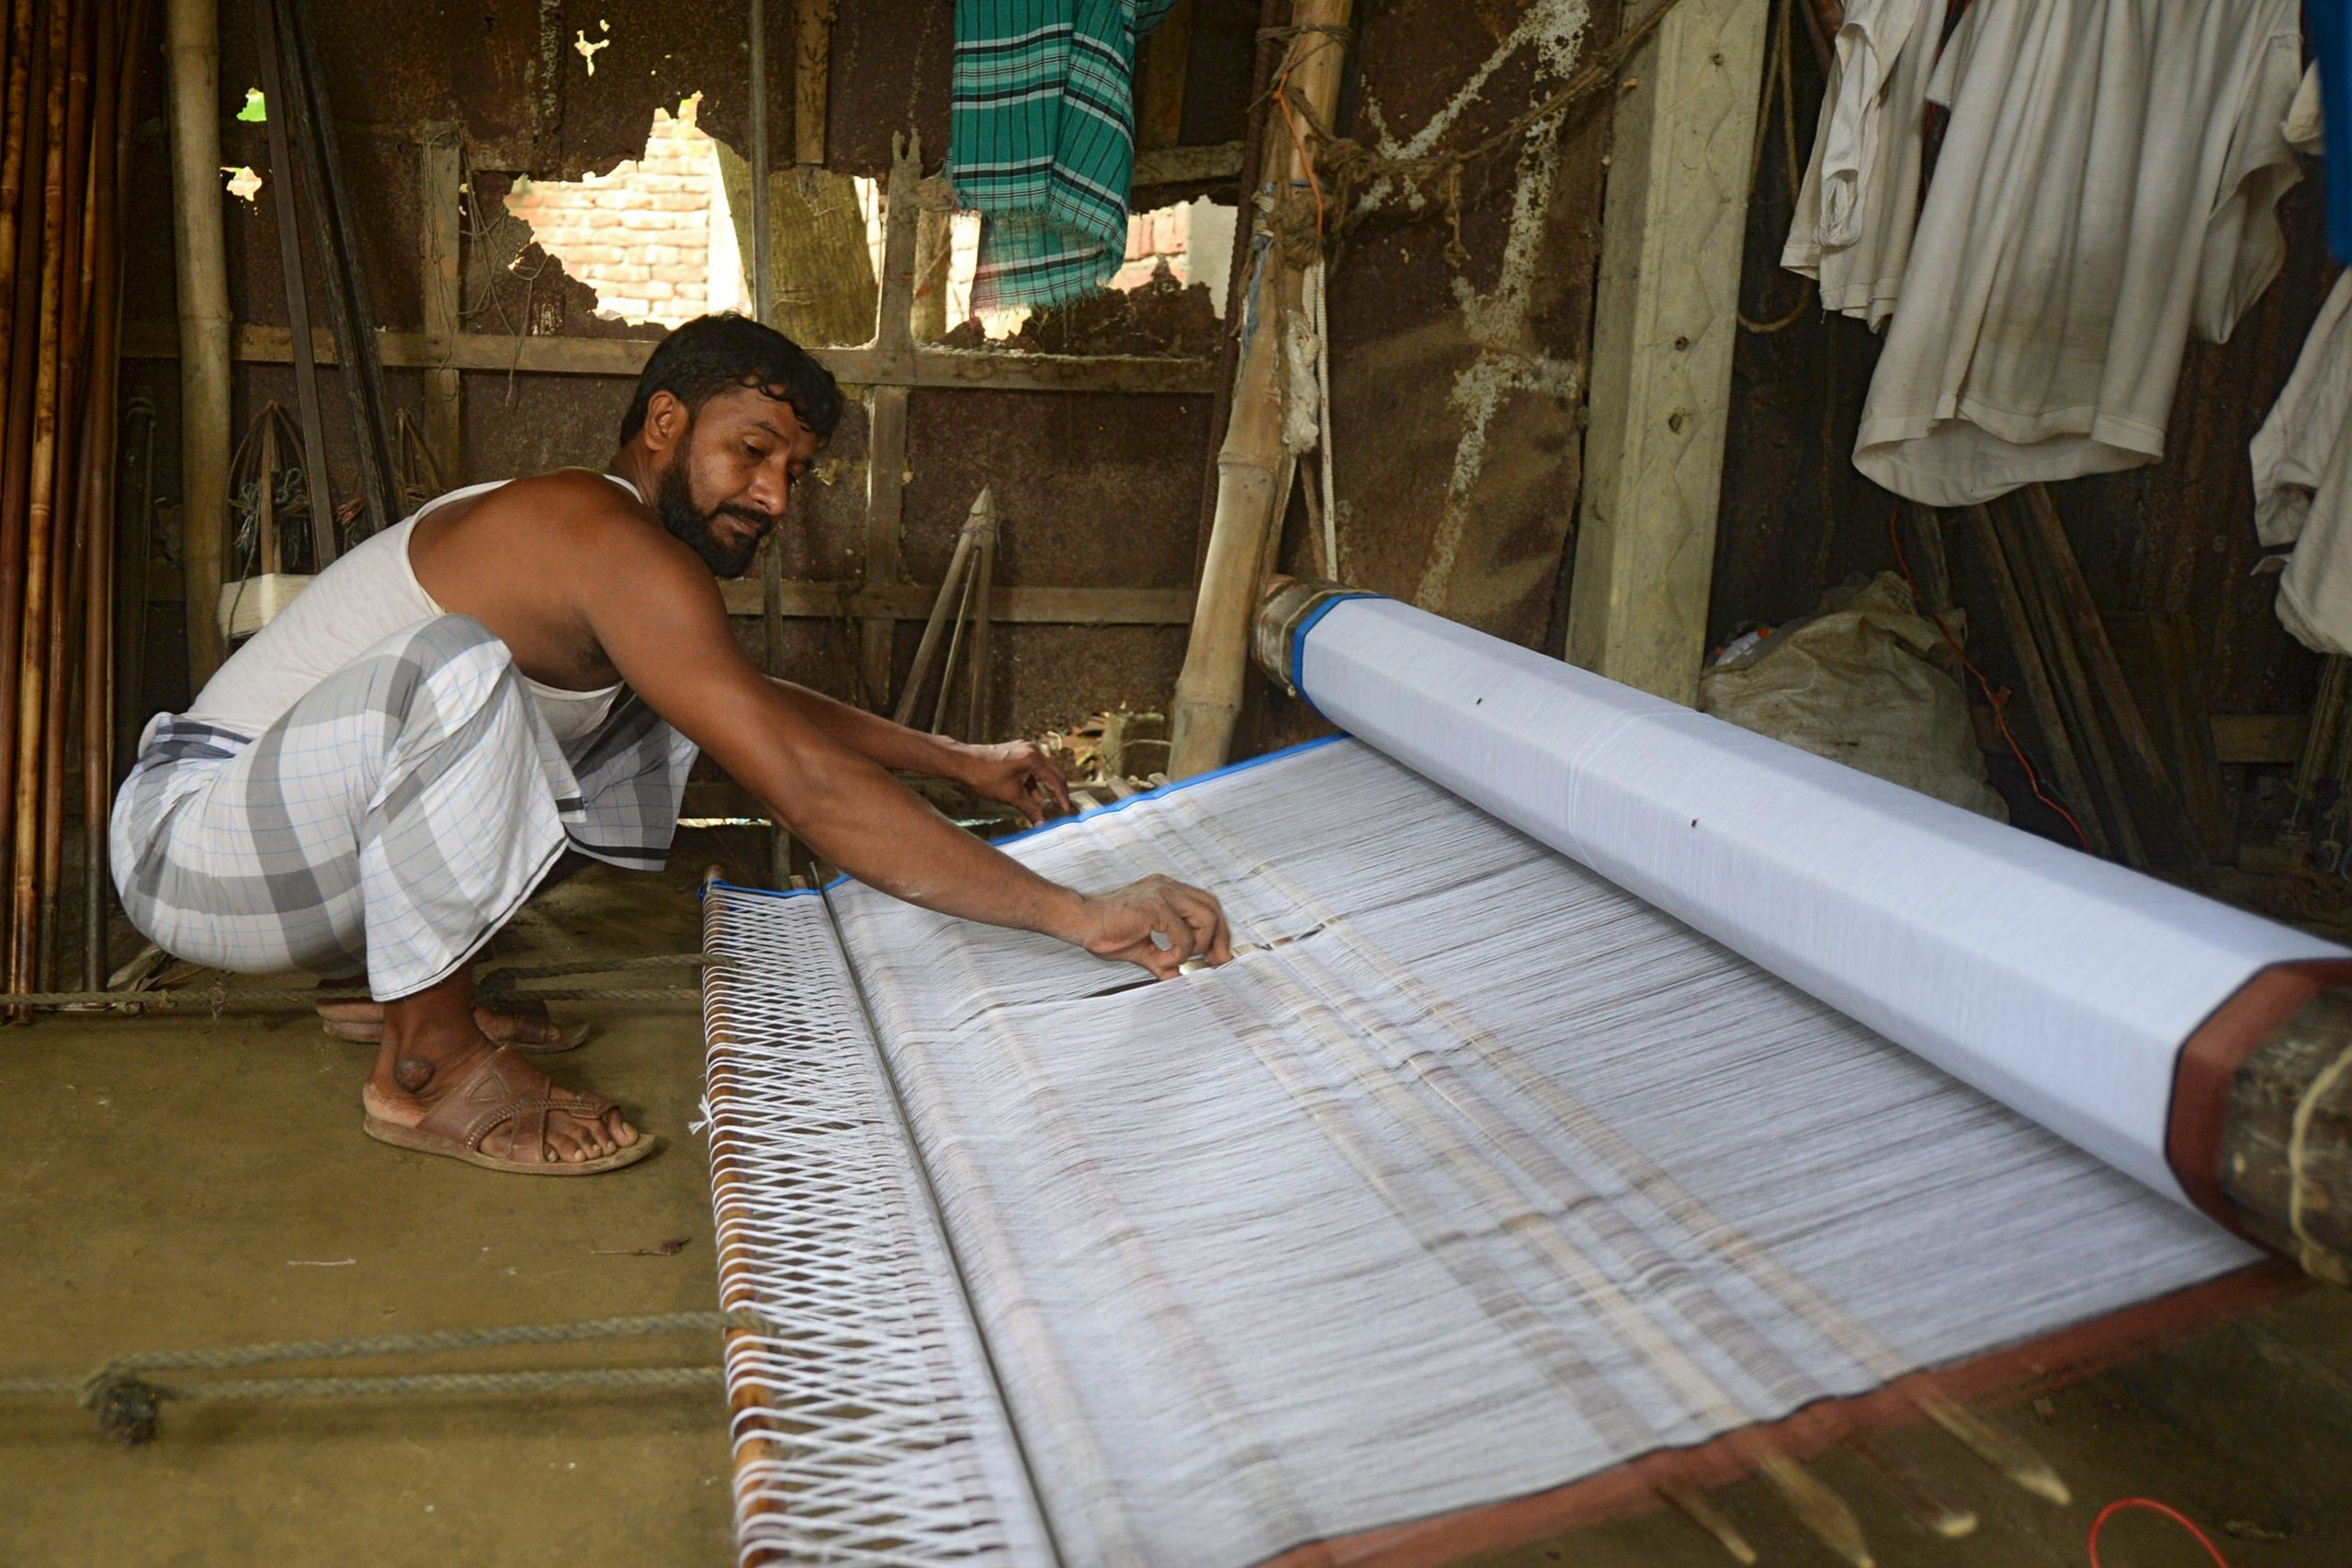 In this picture taken on September 15, 2020, a weaver prepares threads to make fabric with a handloom in Ruhitpur on the outskirts of Dhaka. - In small tin sheds in a rural town just outside Bangladesh's capital Dhaka, wooden looms are deftly operated by a group of men and women -- among the country's last traditional weavers as huge garment factories churn out cheaper alternatives. The South Asian nation's centuries-old traditional weaving was once highly sort after, with nobility from Asia and Europe wearing the fine Muslin clothing. (Photo by Munir UZ ZAMAN / AFP) (Photo by MUNIR UZ ZAMAN/AFP via Getty Images)